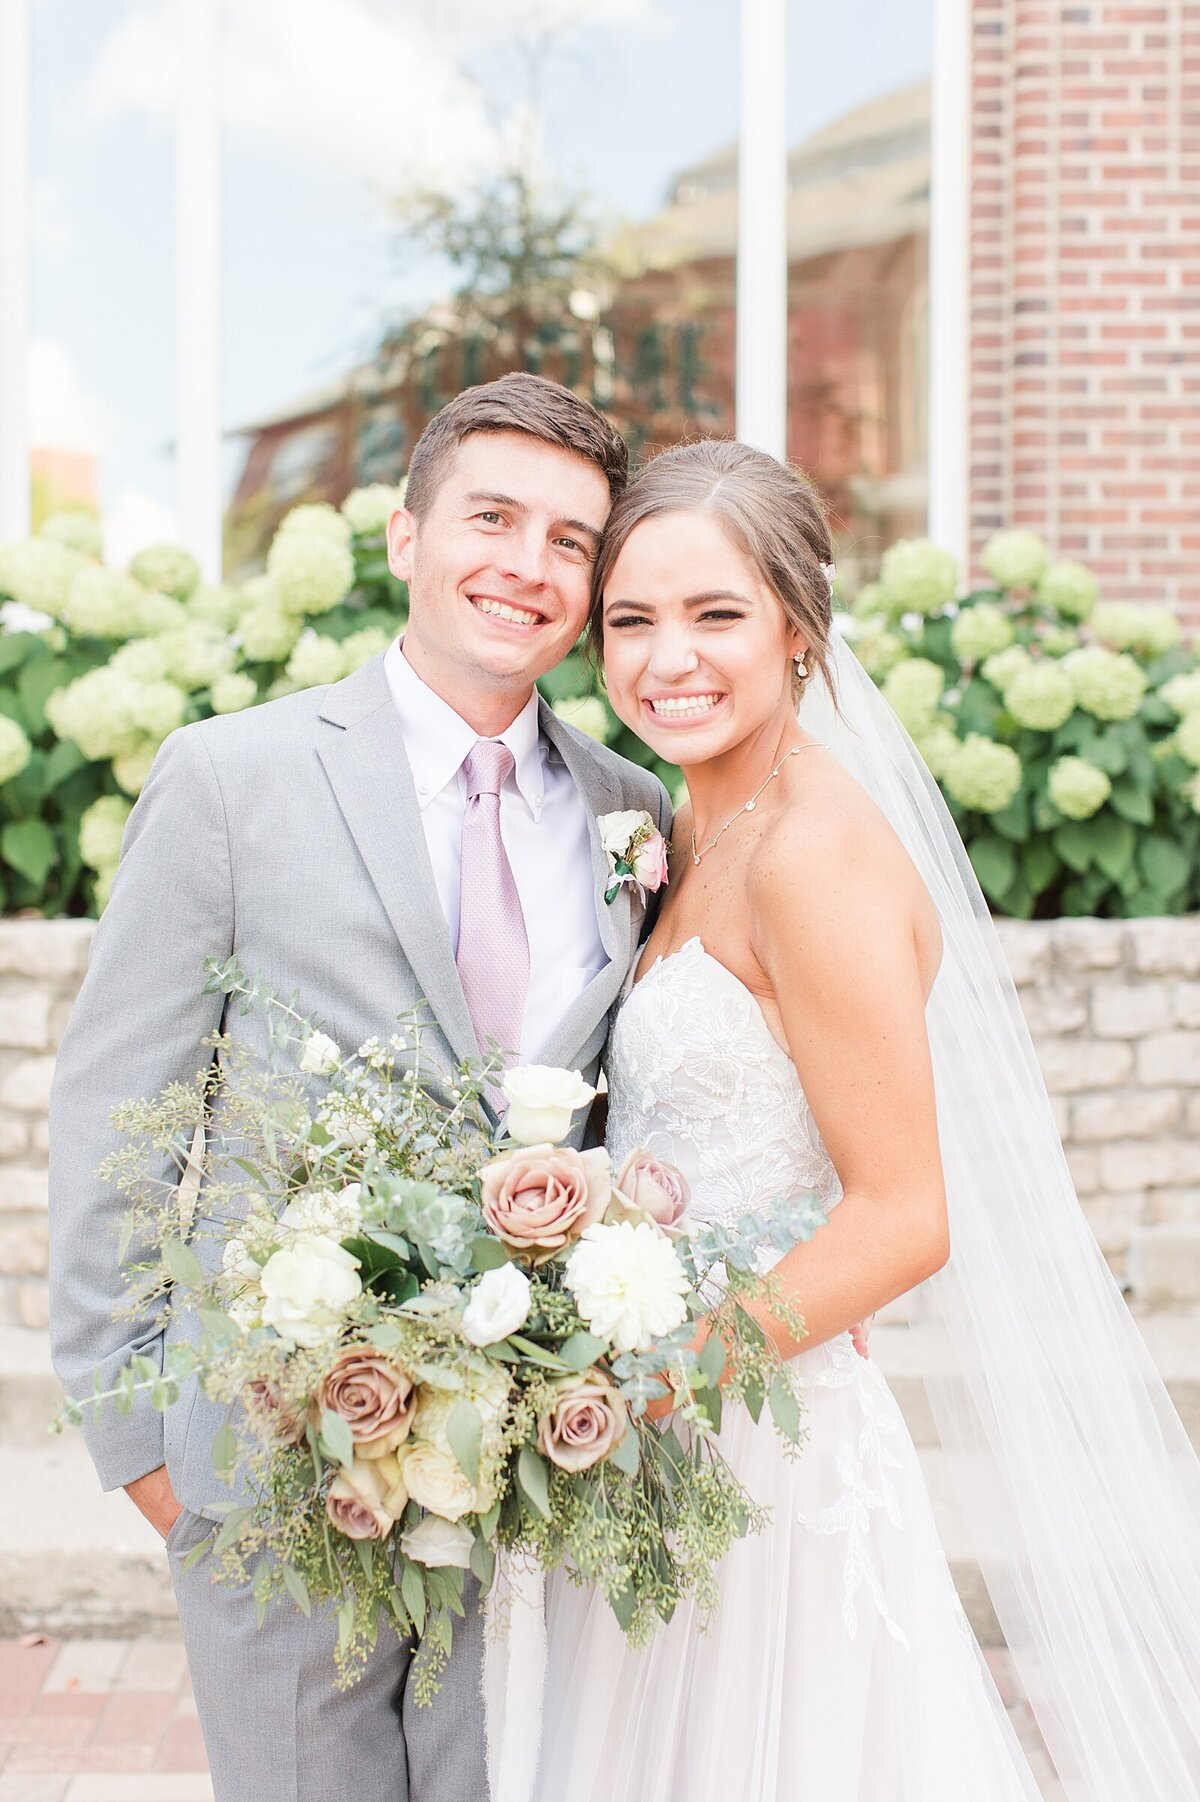 Kara Webster Photography | Meredith & Tyler | University Of Dayton Marriott Wedding Photographer_0057